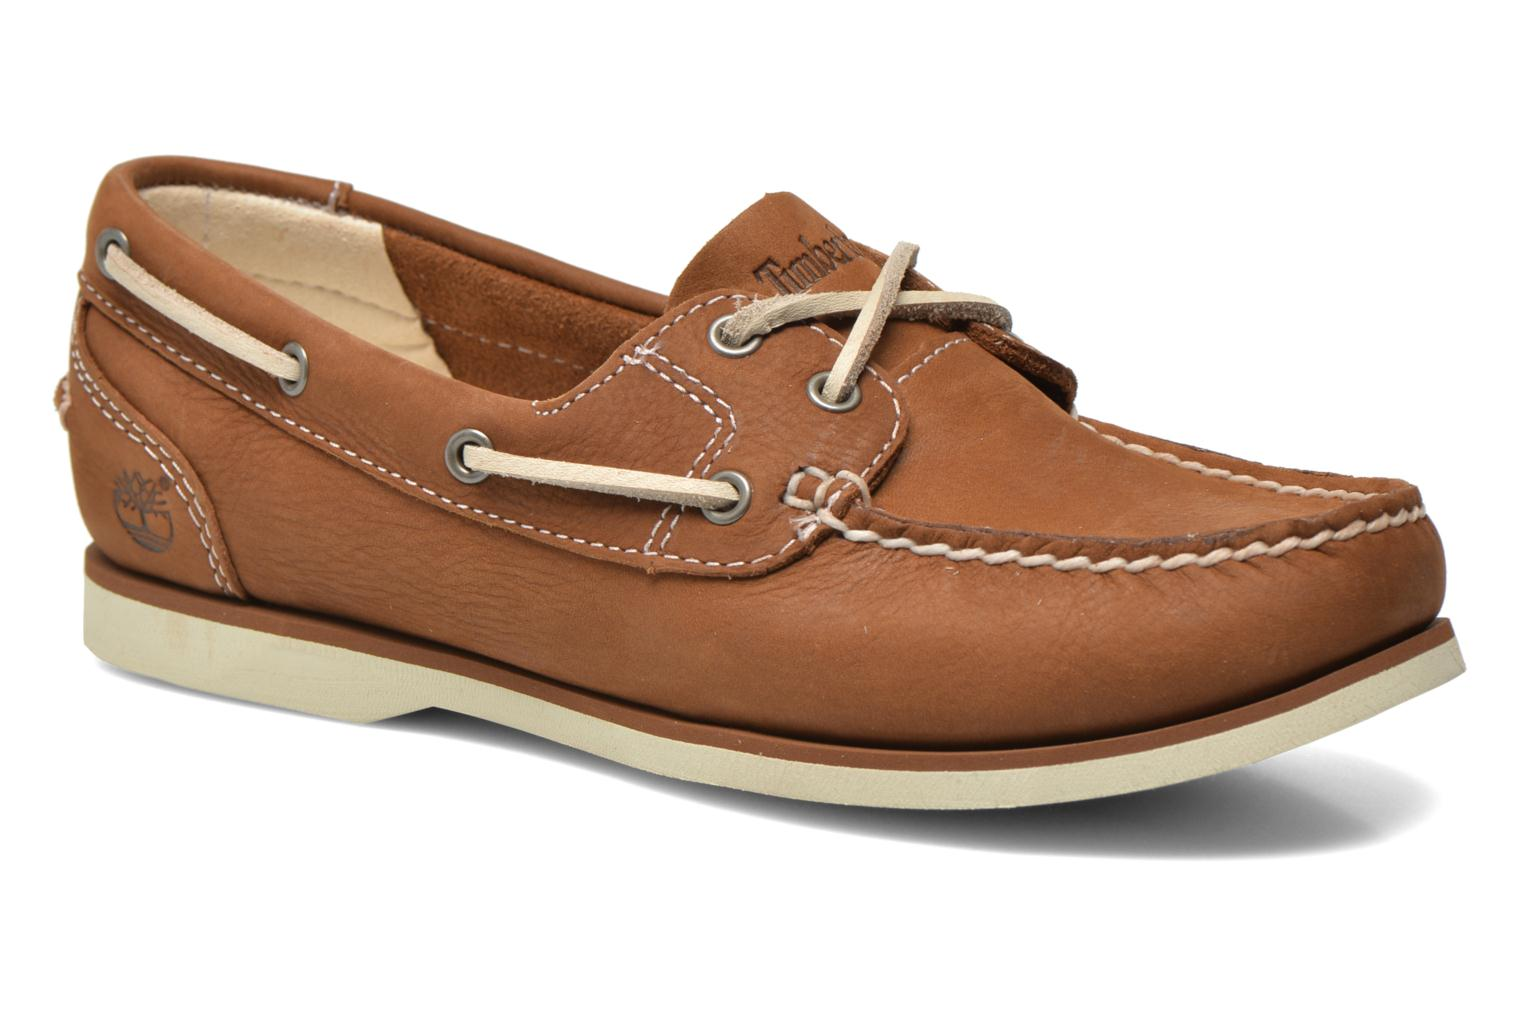 Classic Boat Unlined Boat Shoe Medium Brown BFB